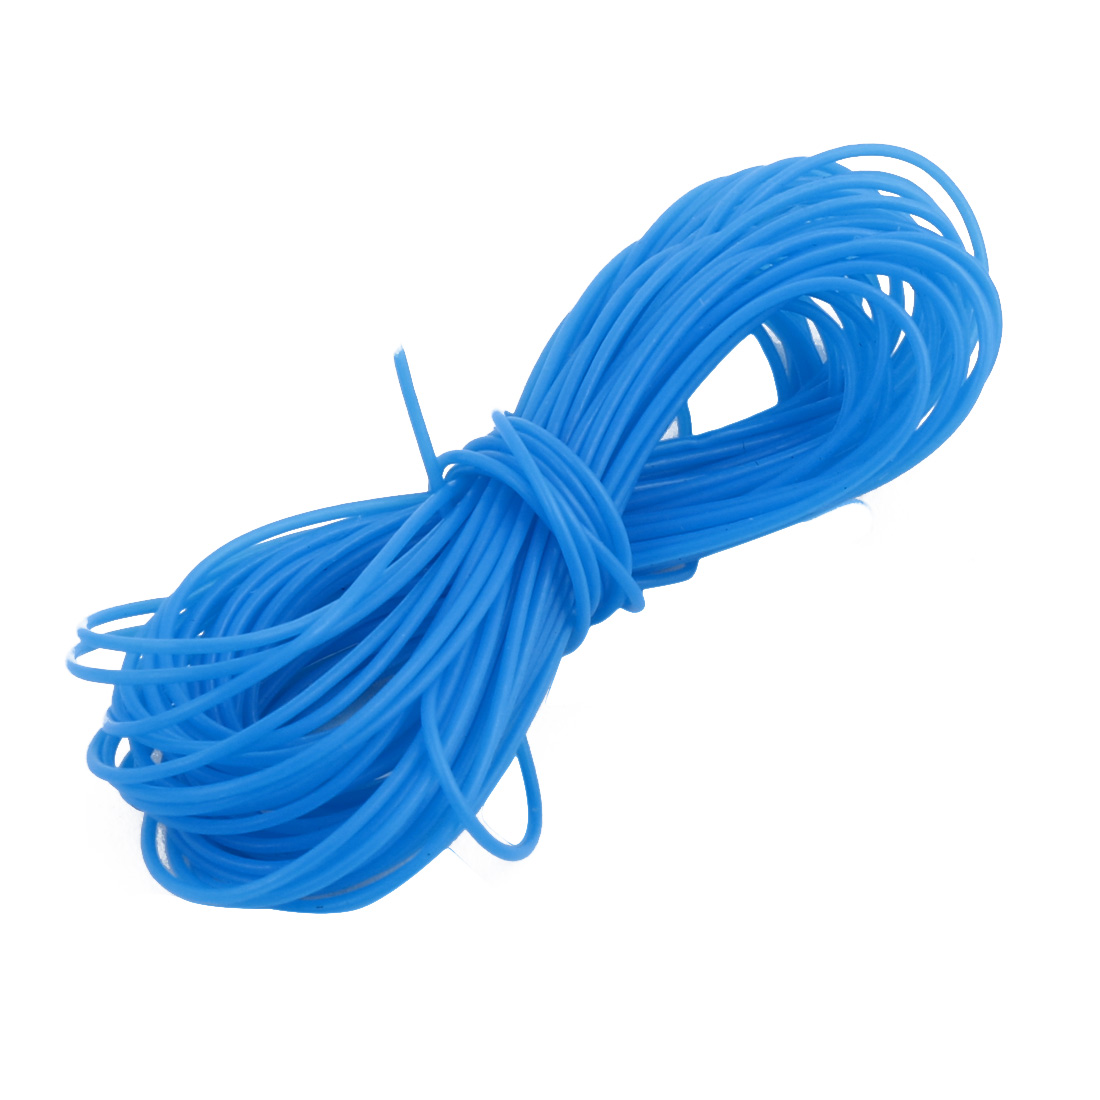 0.3mmx0.6mm PTFE Resistant High Temperature Blue Tubing 10 Meters 32.8Ft